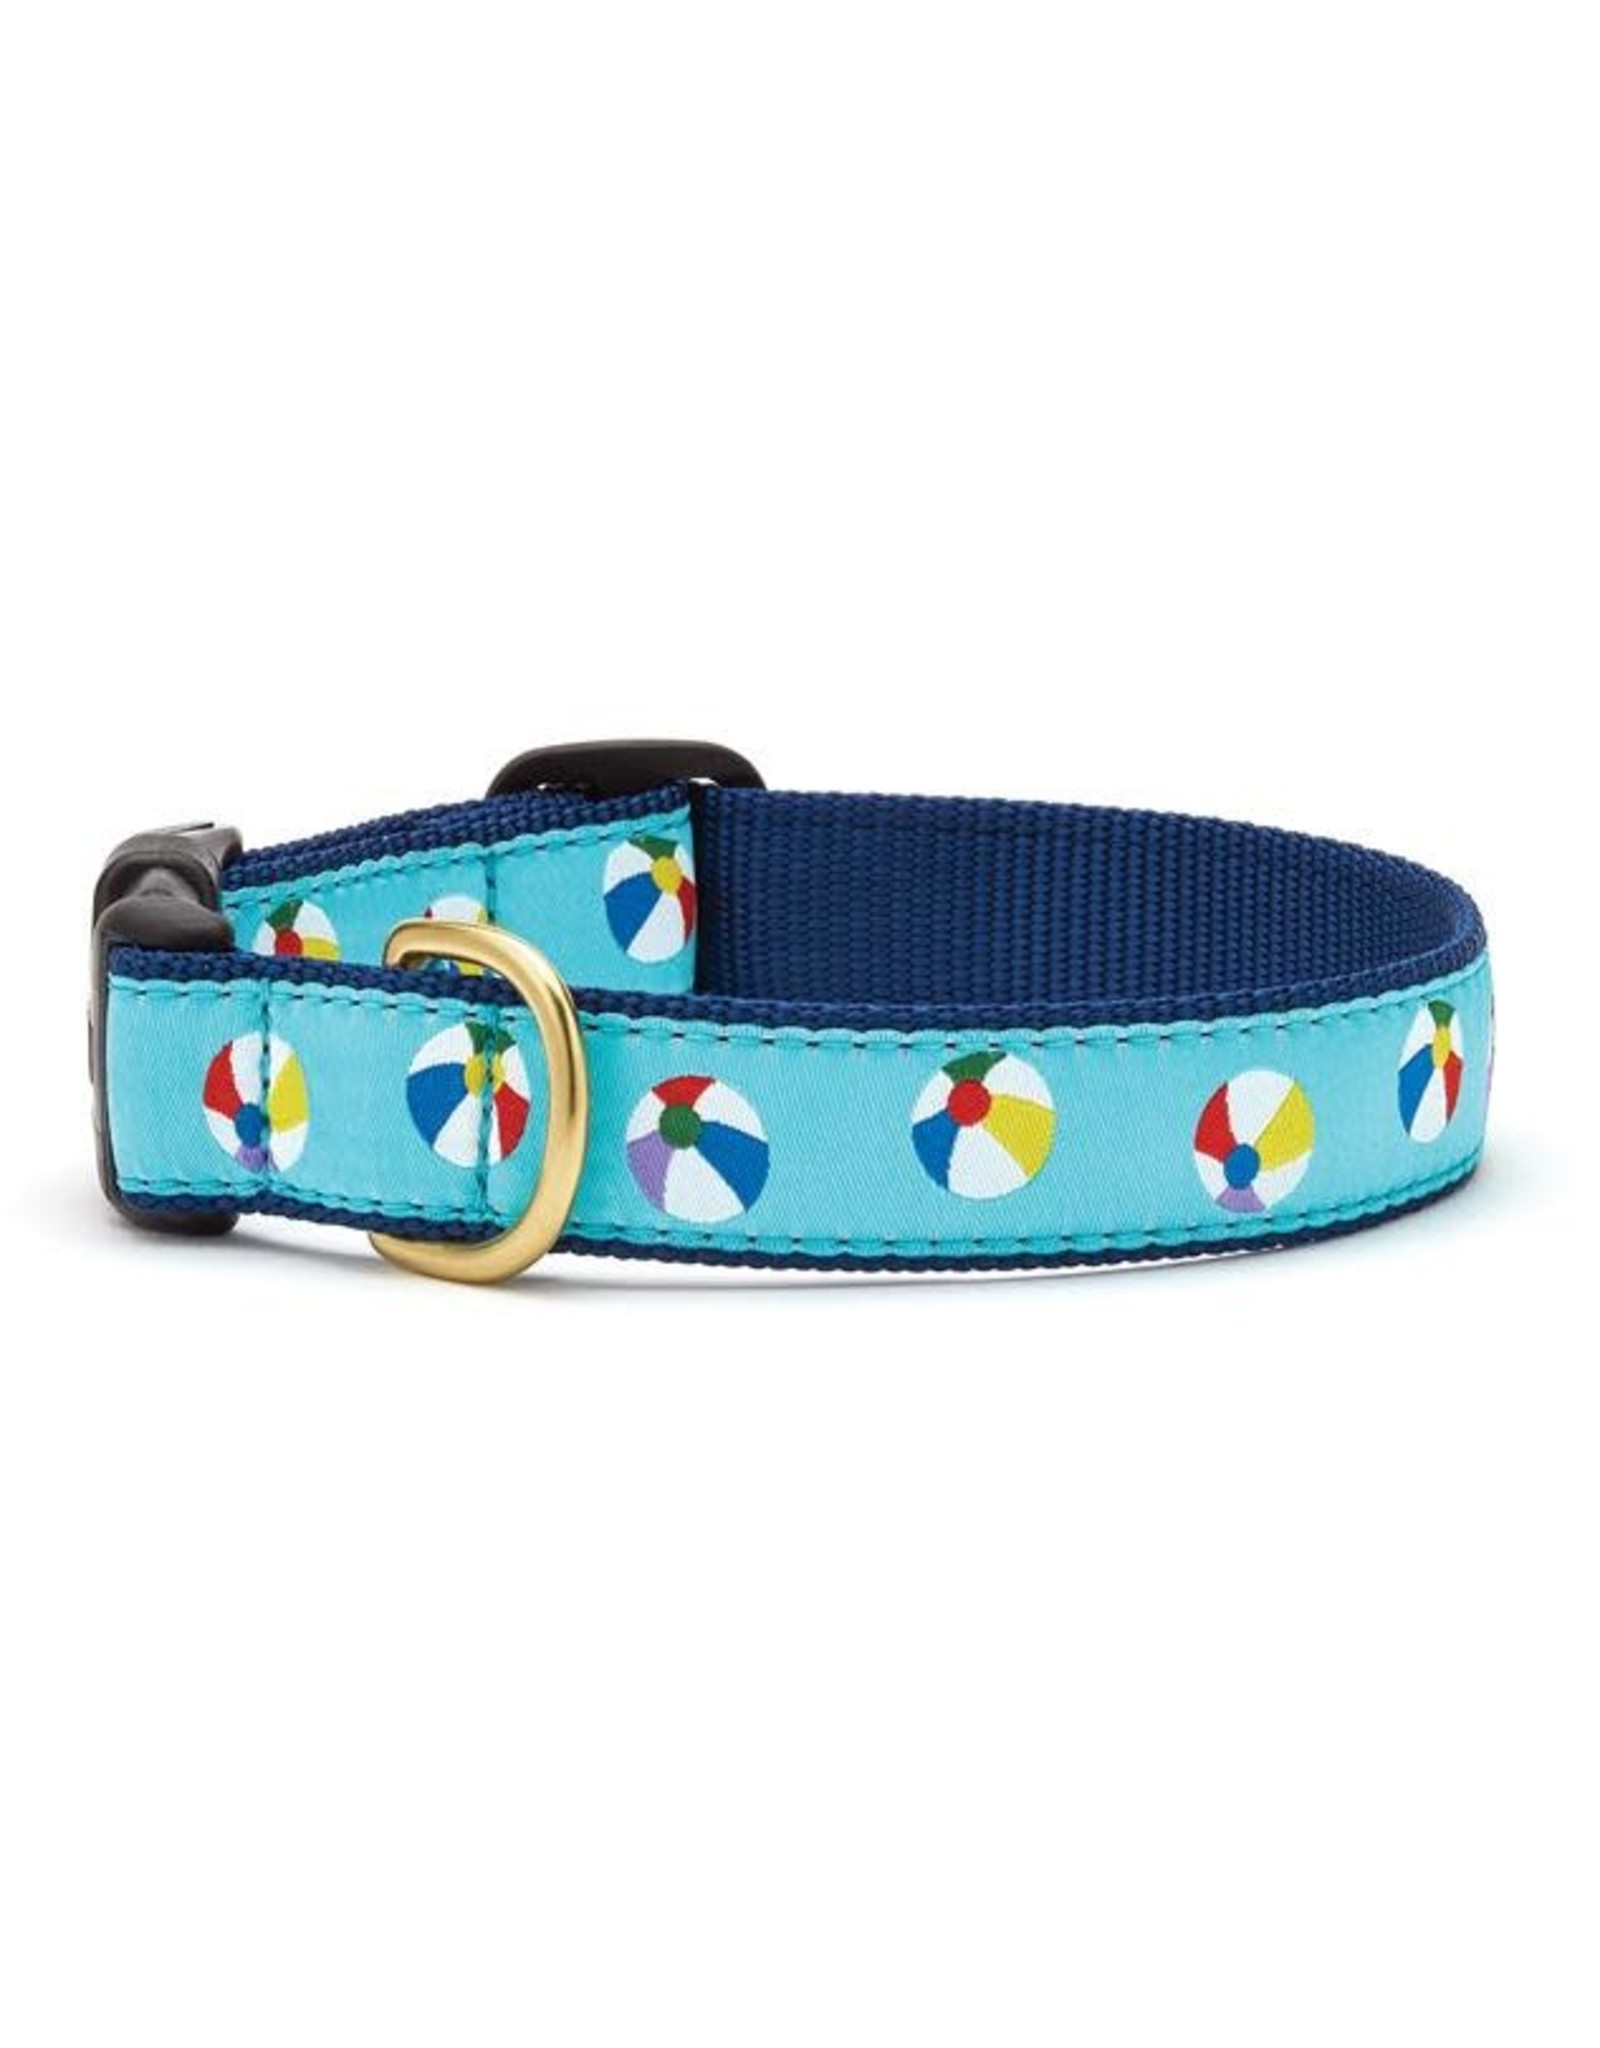 Up Country Beach Balls Collar: Wide, L